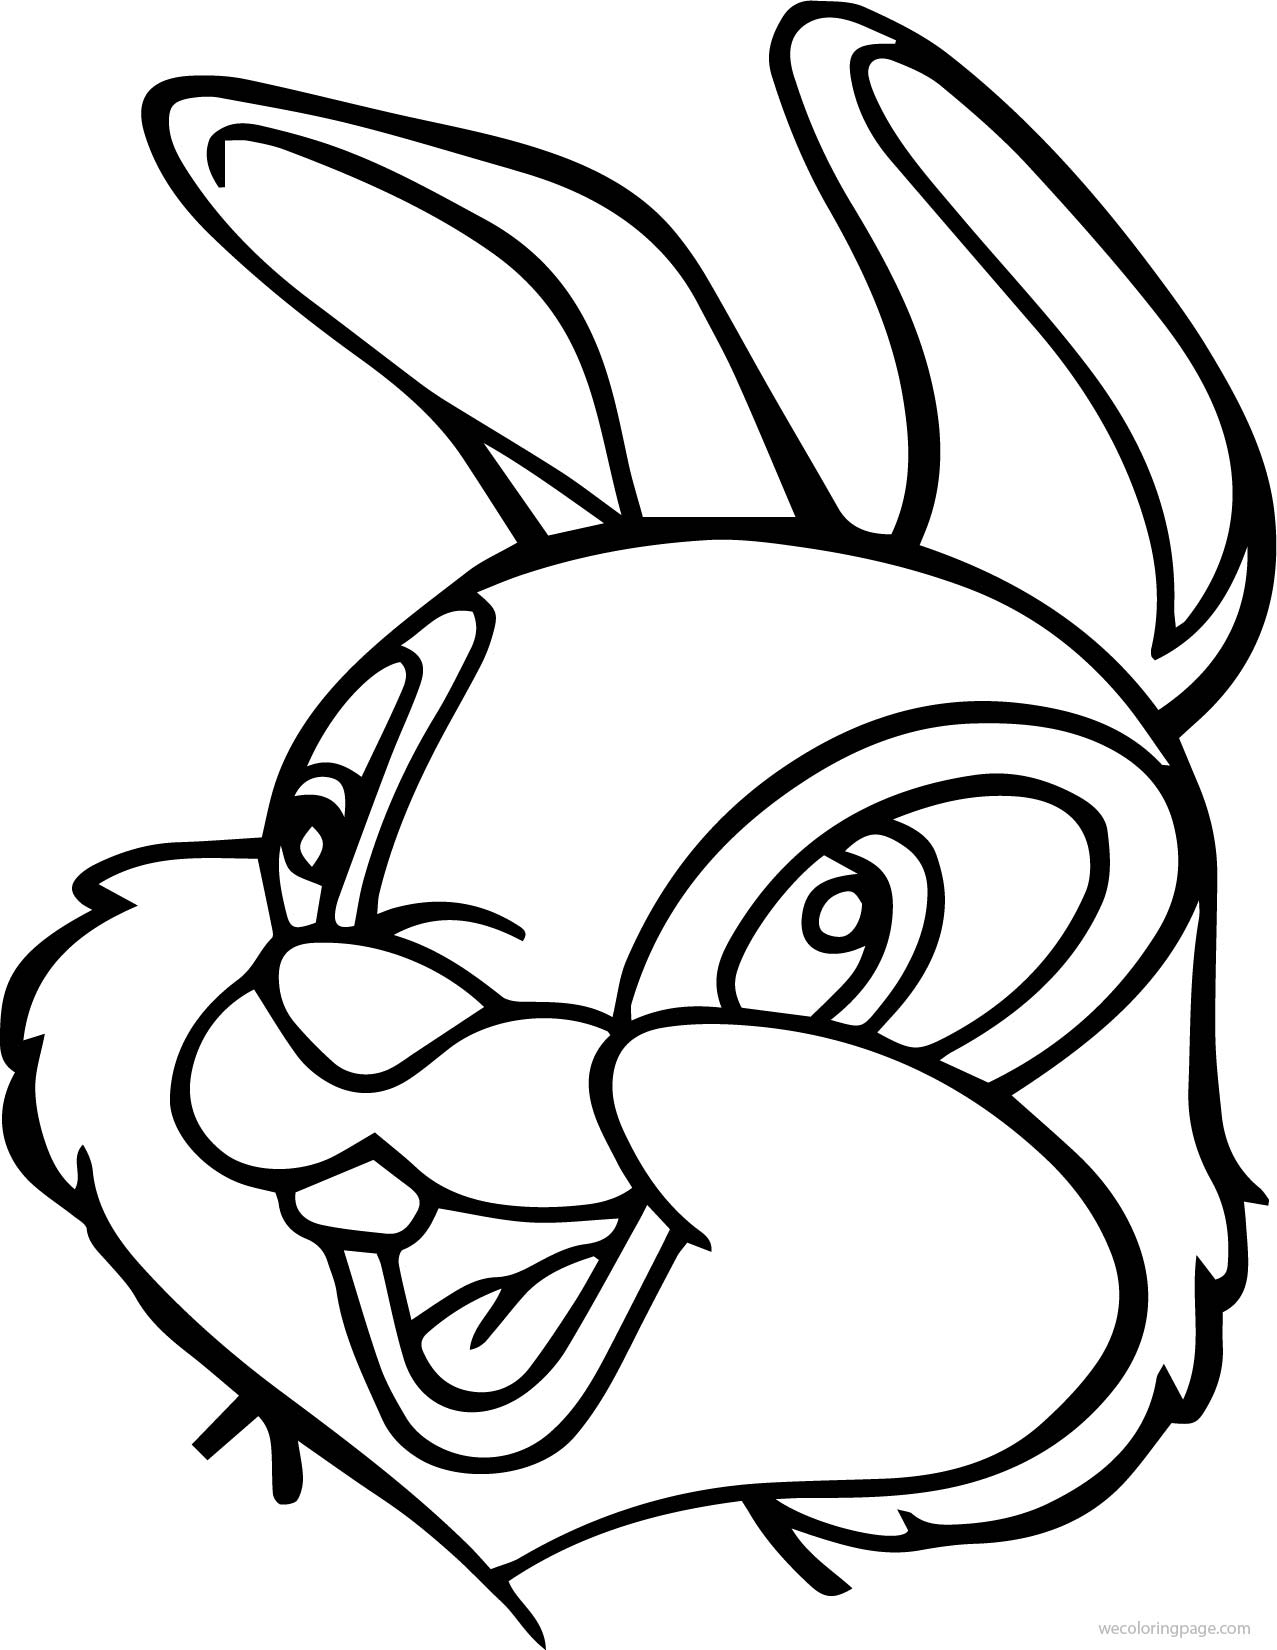 disney bambi thumber bunny bunny face cartoon coloring page